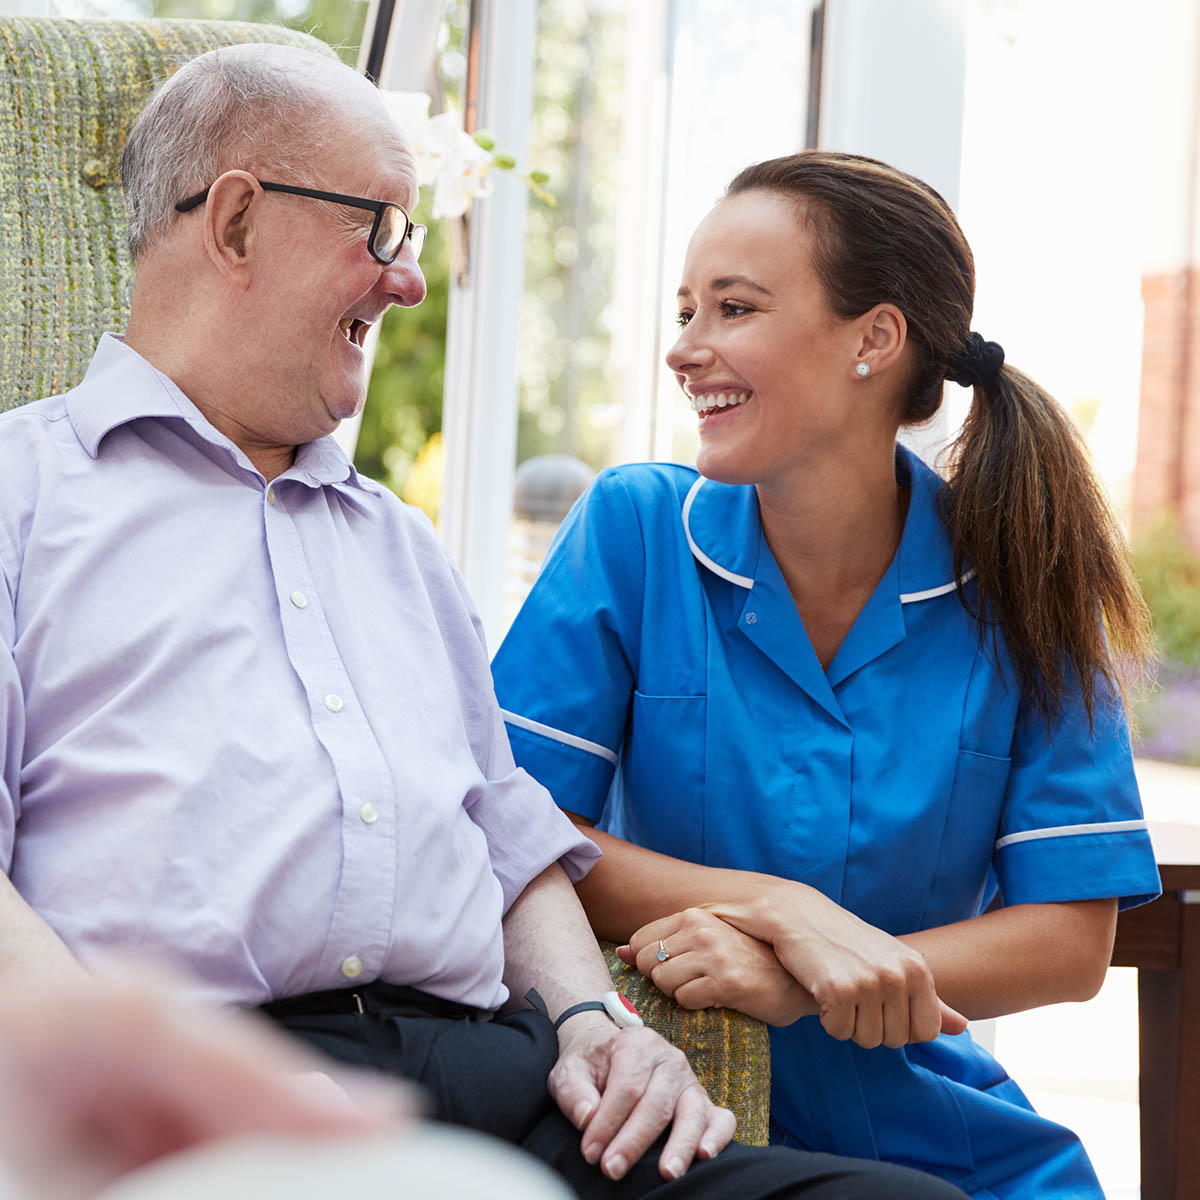 Care home nurse with elderly patient